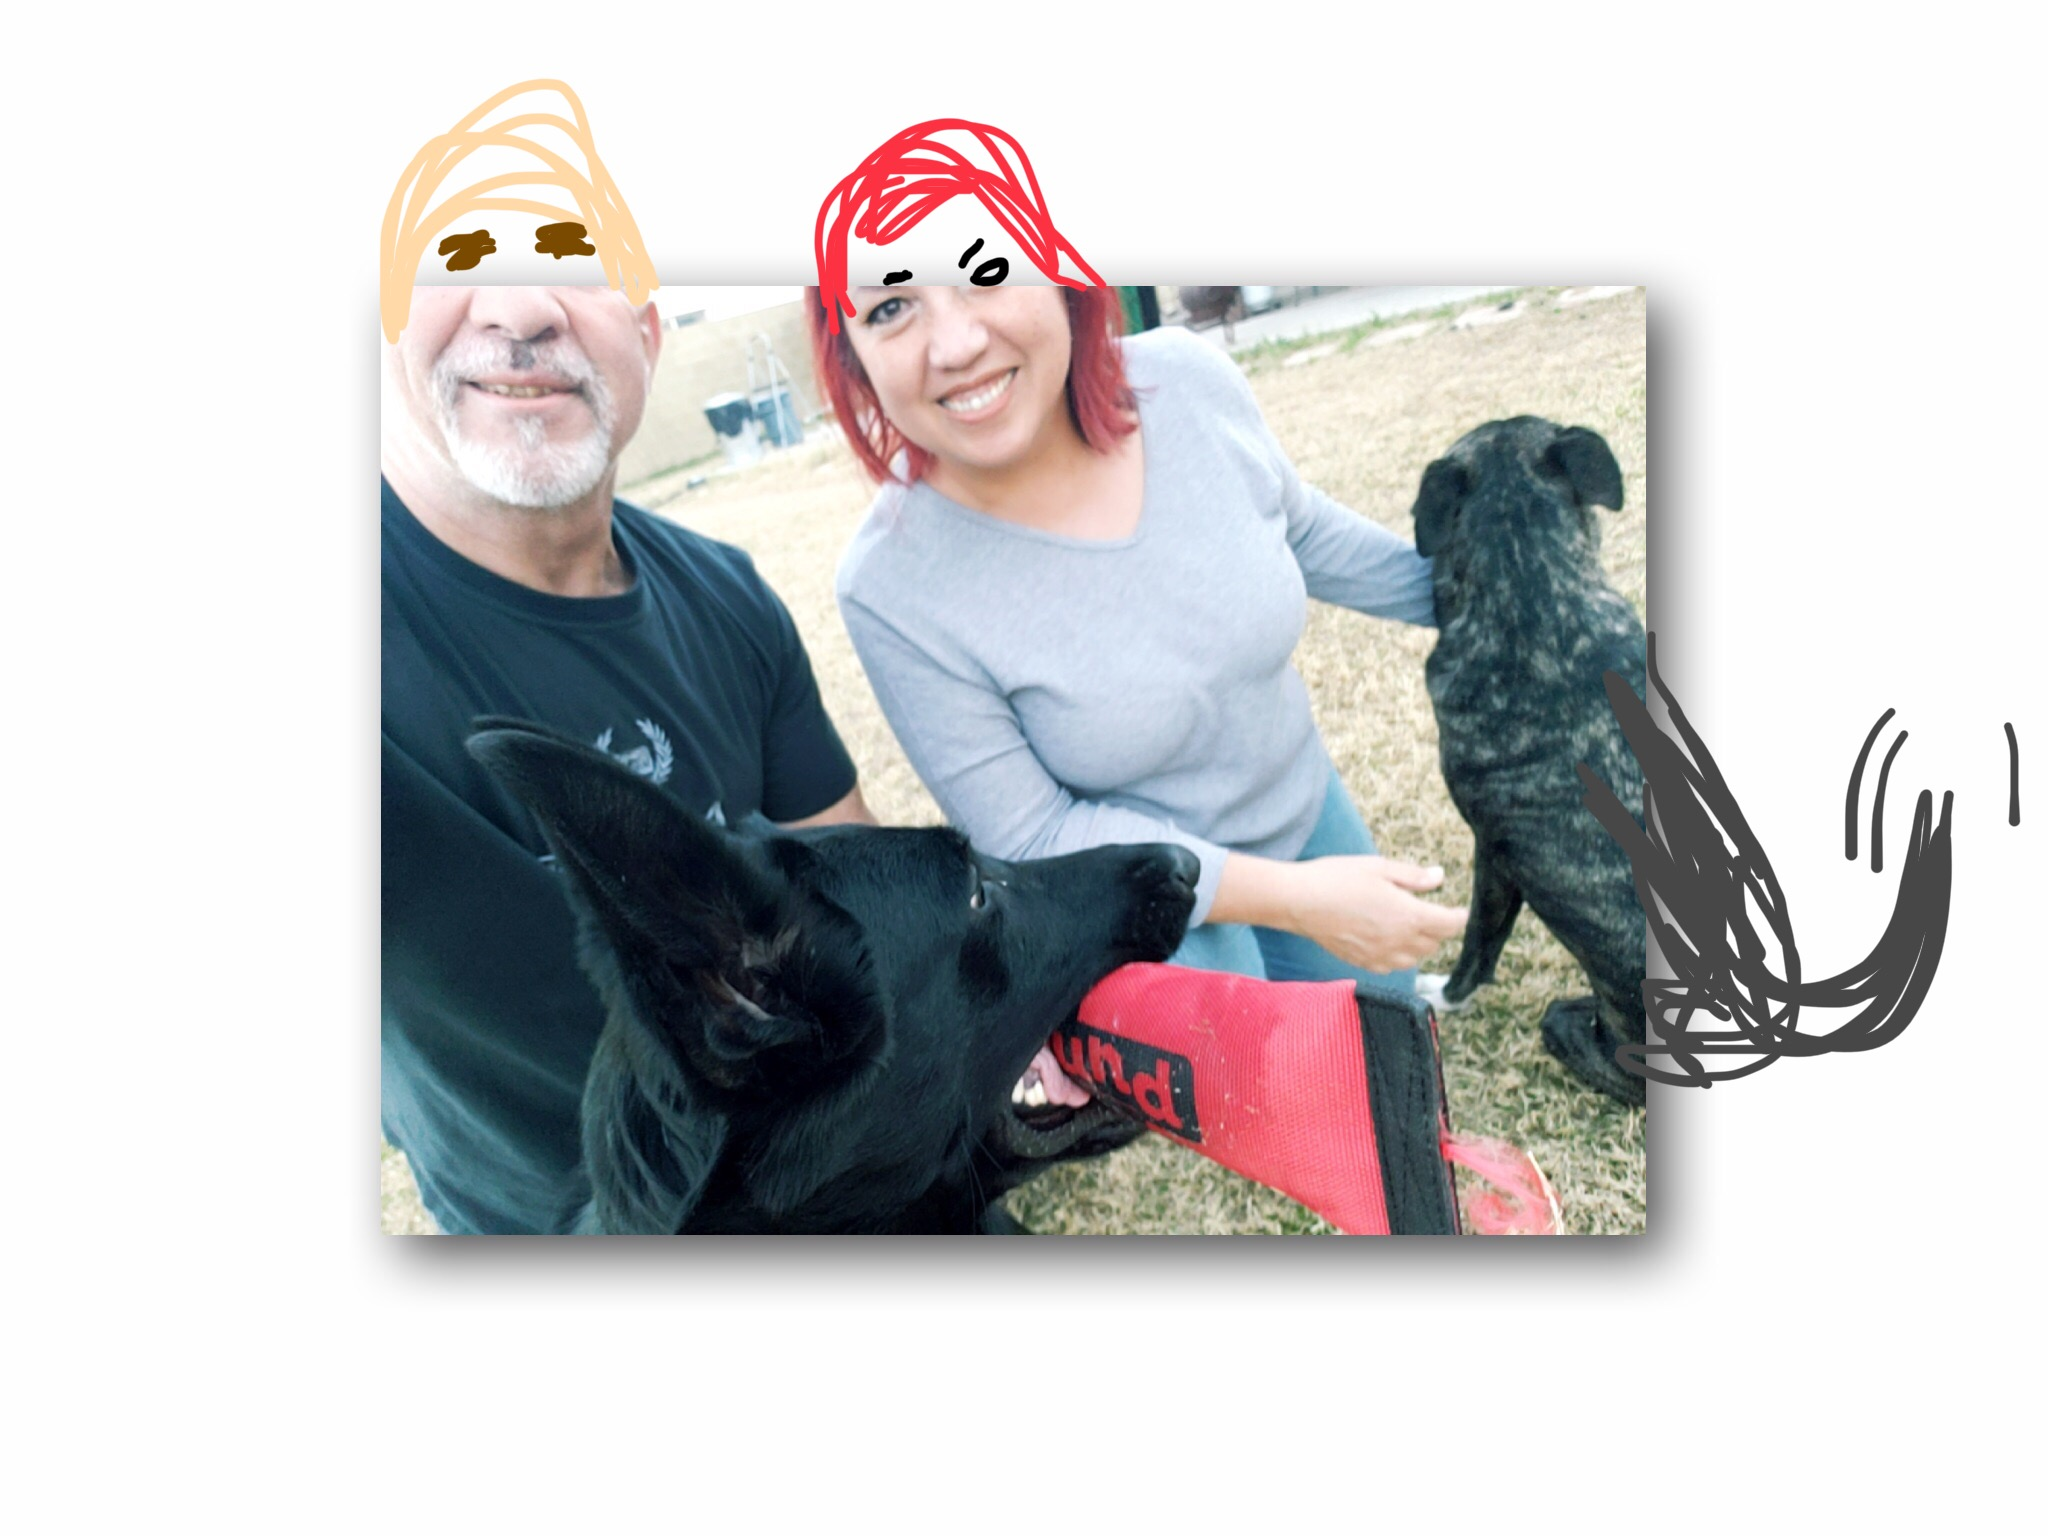 Selfies are not my forte 😂 - Me my spouse and my two dogs